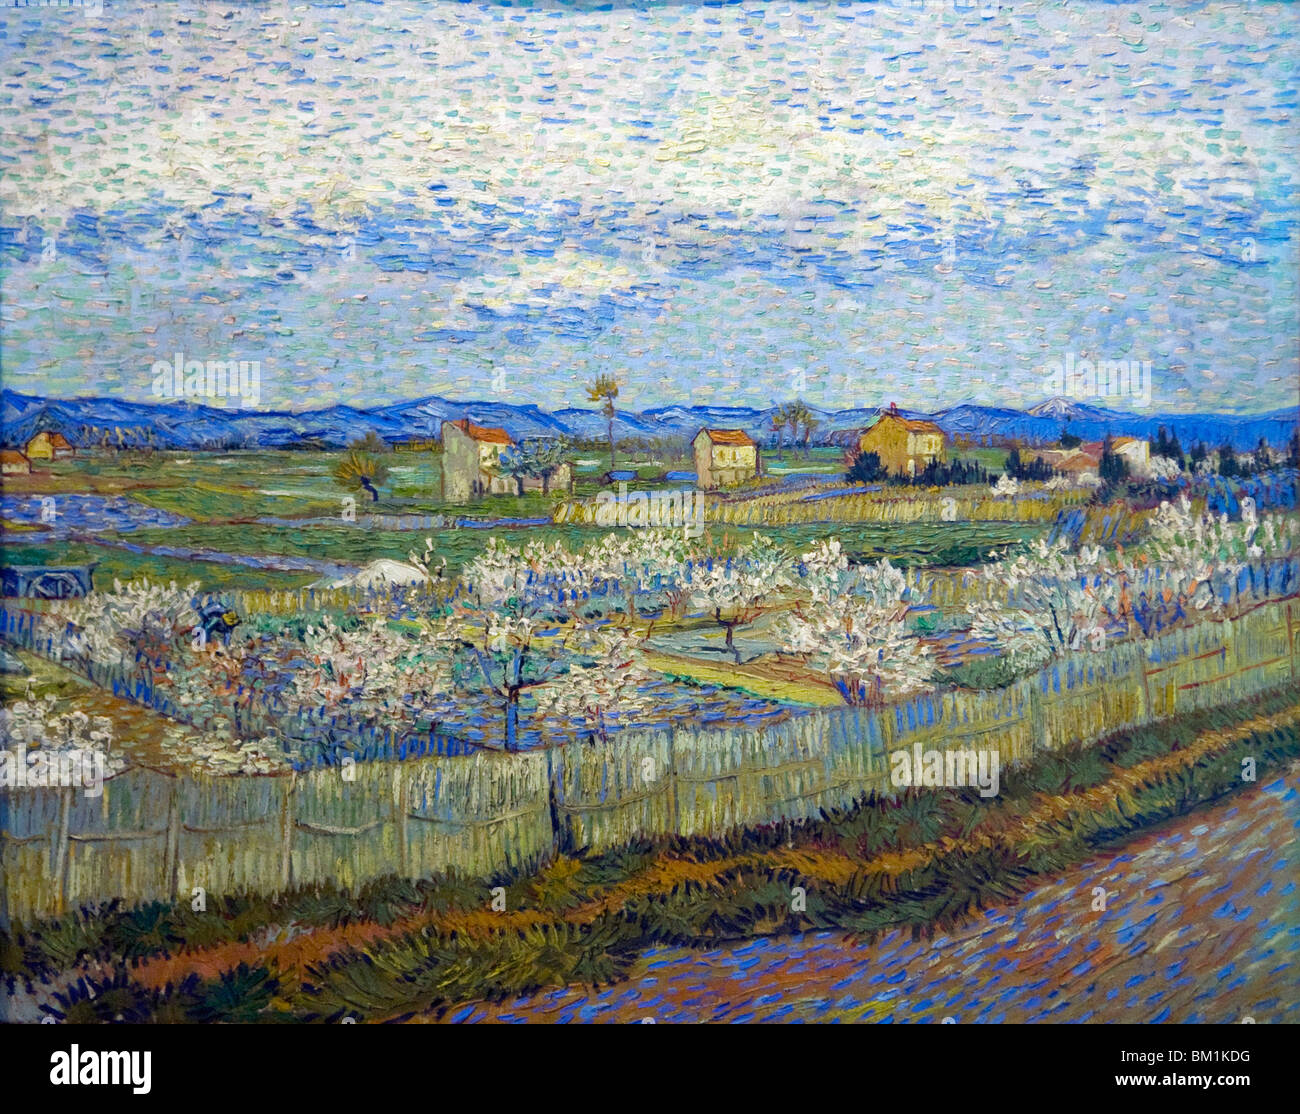 Crau at arles peach trees in flower painted by vincent van gogh 1889 courtauld institute gallery